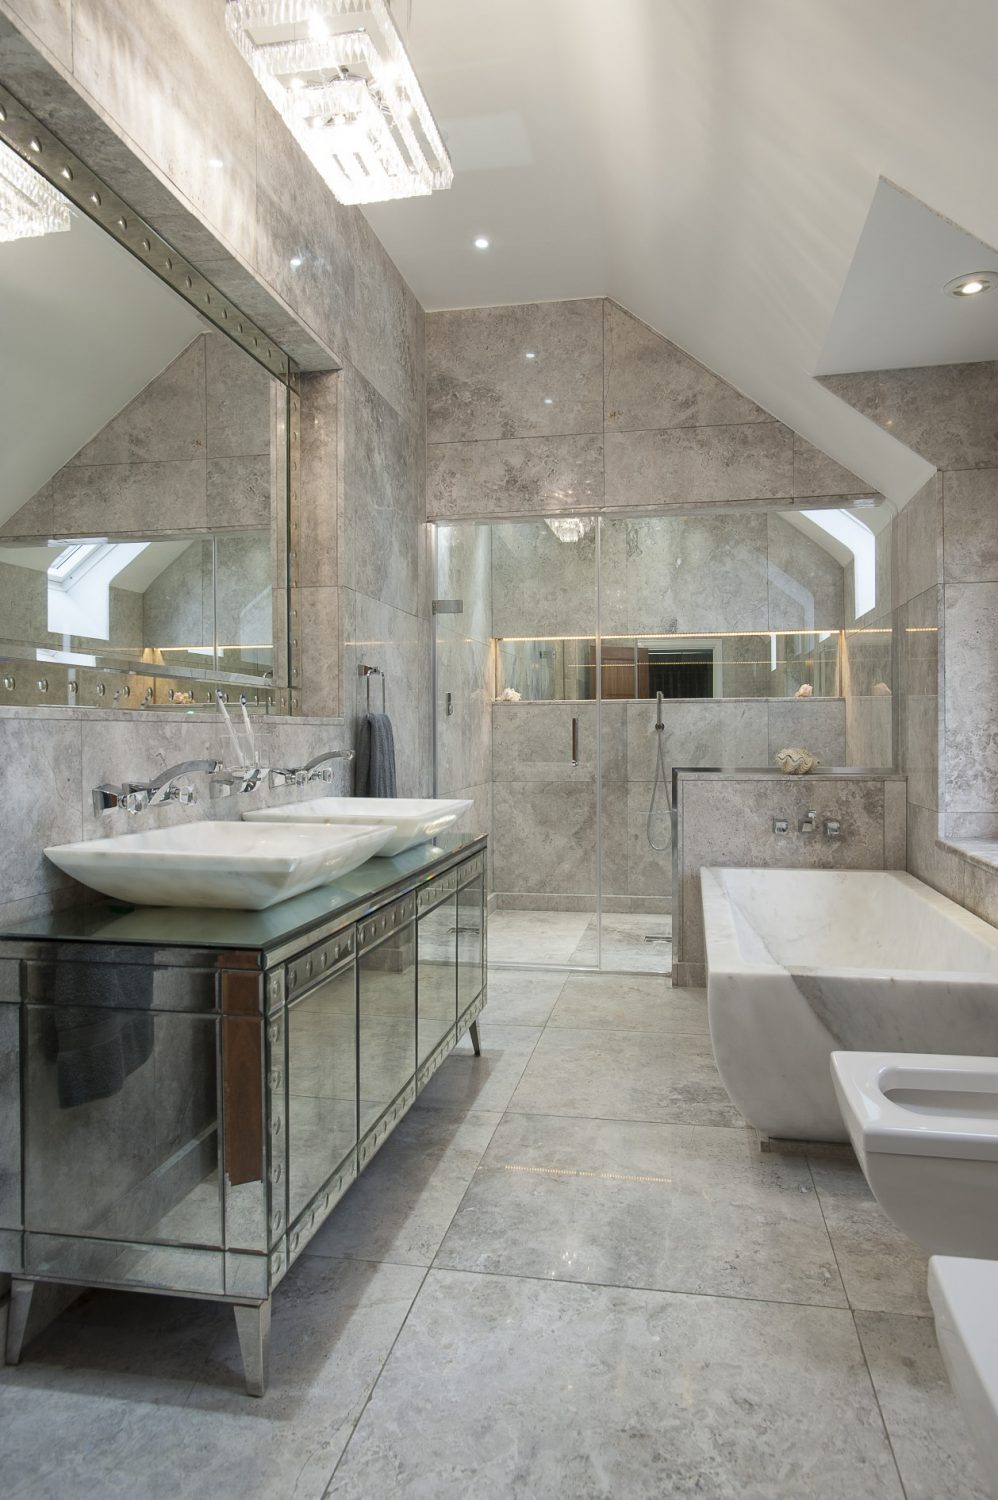 The bathroom with its part-vaulted ceiling is superb, its centrepiece a huge bath cut from a single block of Turkish marble...